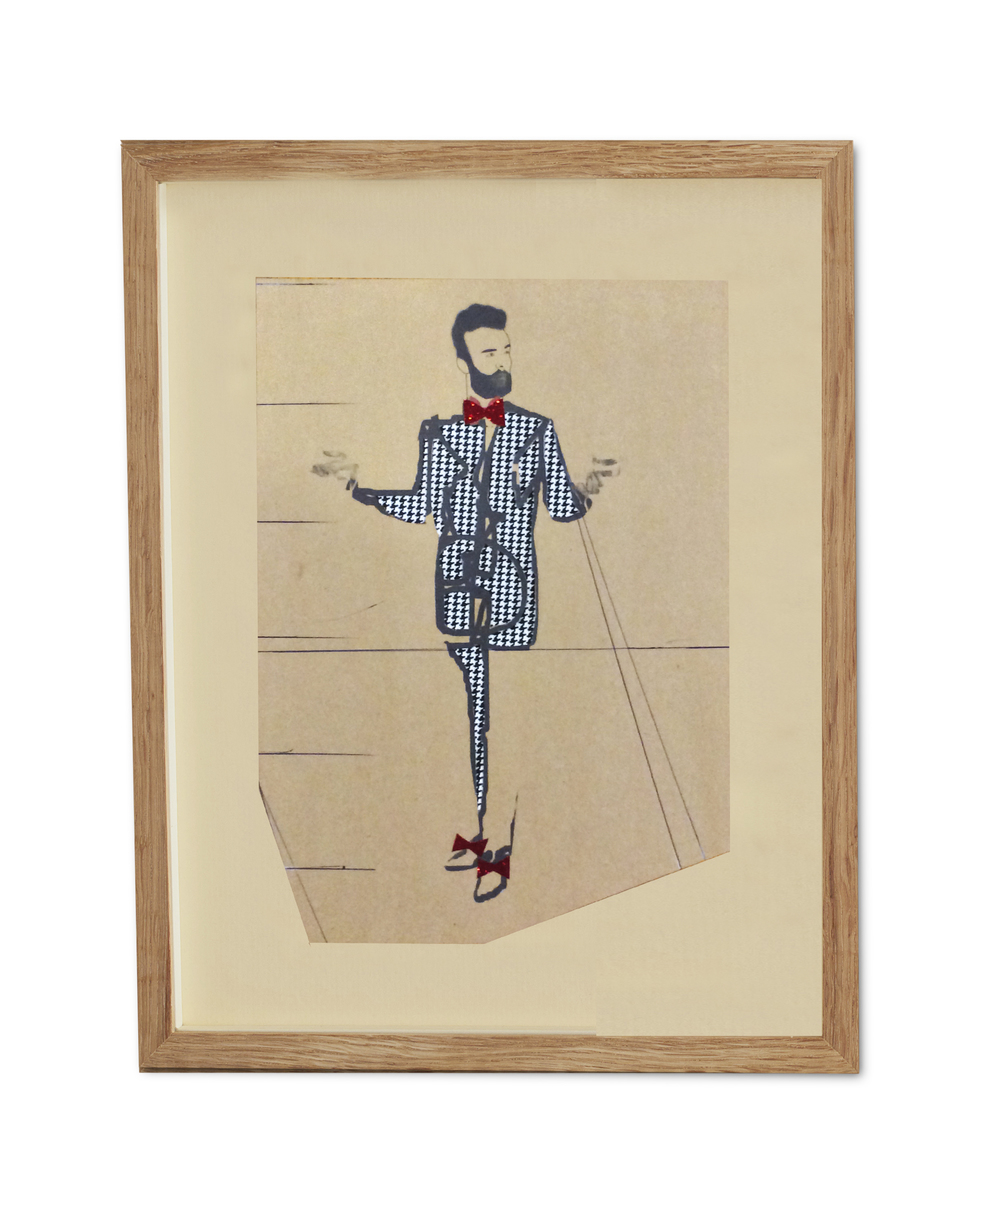 Dogtooth Dapper Don  , 2015  38.2 x 29.6 cm (framed)                                                                   £440